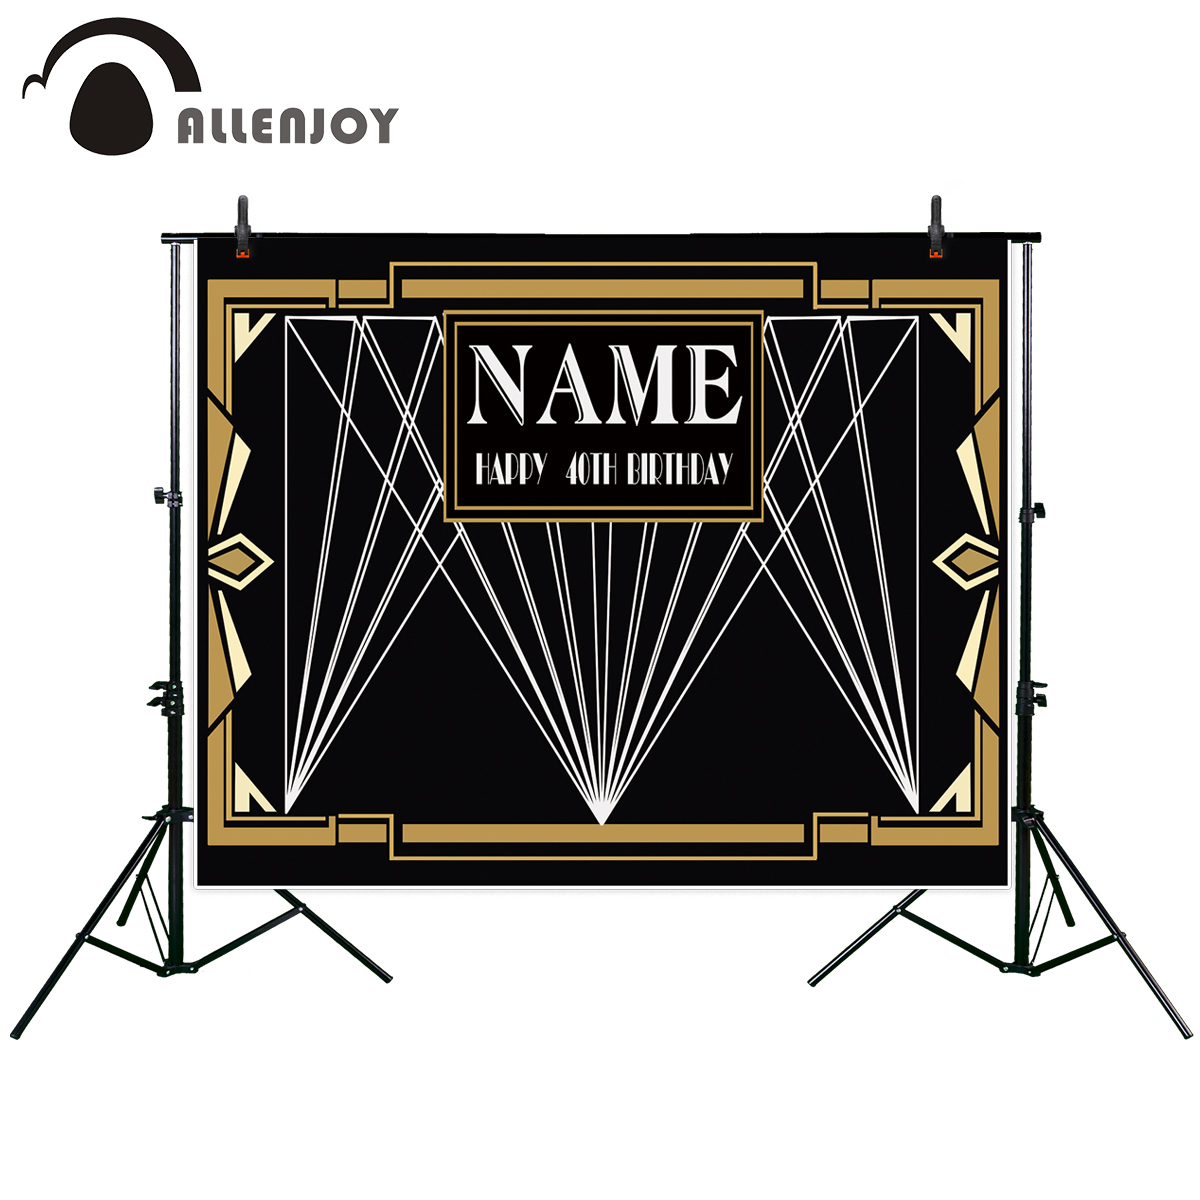 Allenjoy great gatsby birthday backdrop black party golden banner photo studio booth background newborn baby shower photocall fitzgerald f the great gatsby stage 5 сd